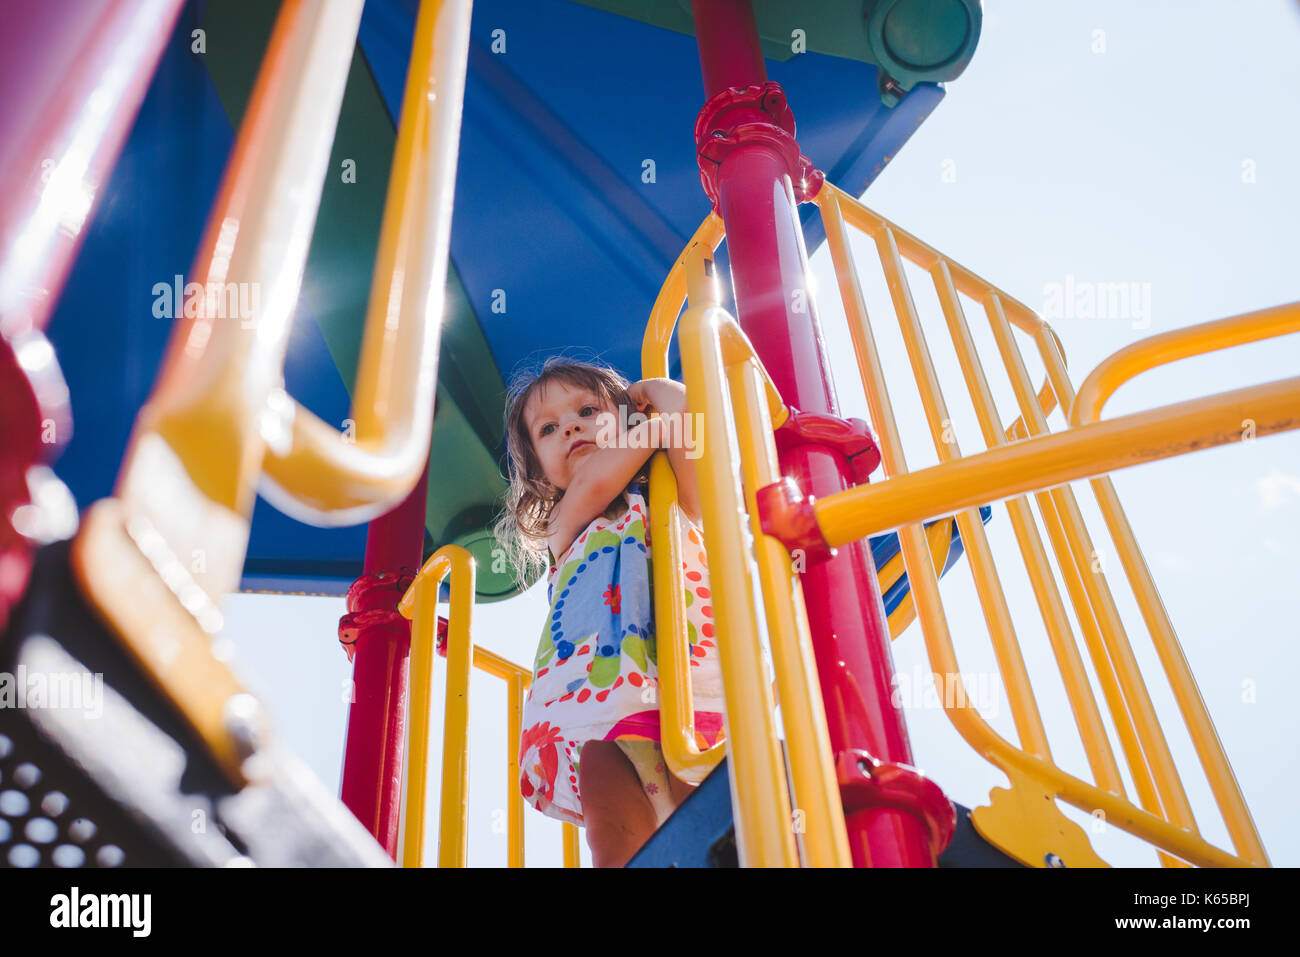 A toddler girl plays on playground equipment on a sunny day. - Stock Image